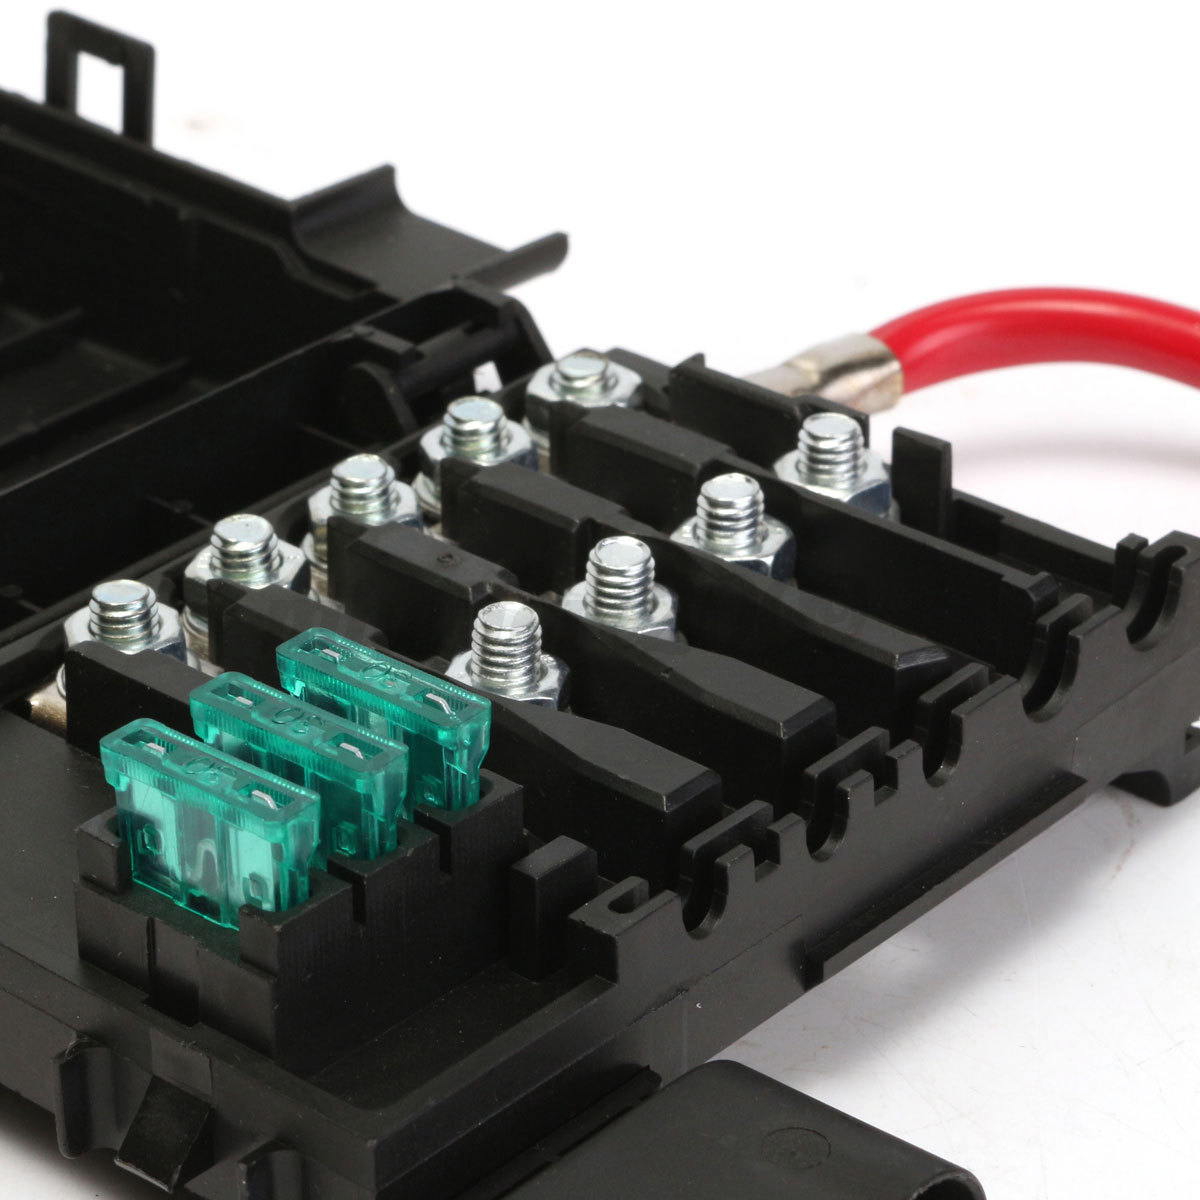 hight resolution of for vw jetta golf mk4 1999 2004 beetle fuse box battery 1999 vw beetle fuse box location 1999 vw beetle battery fuse box diagram